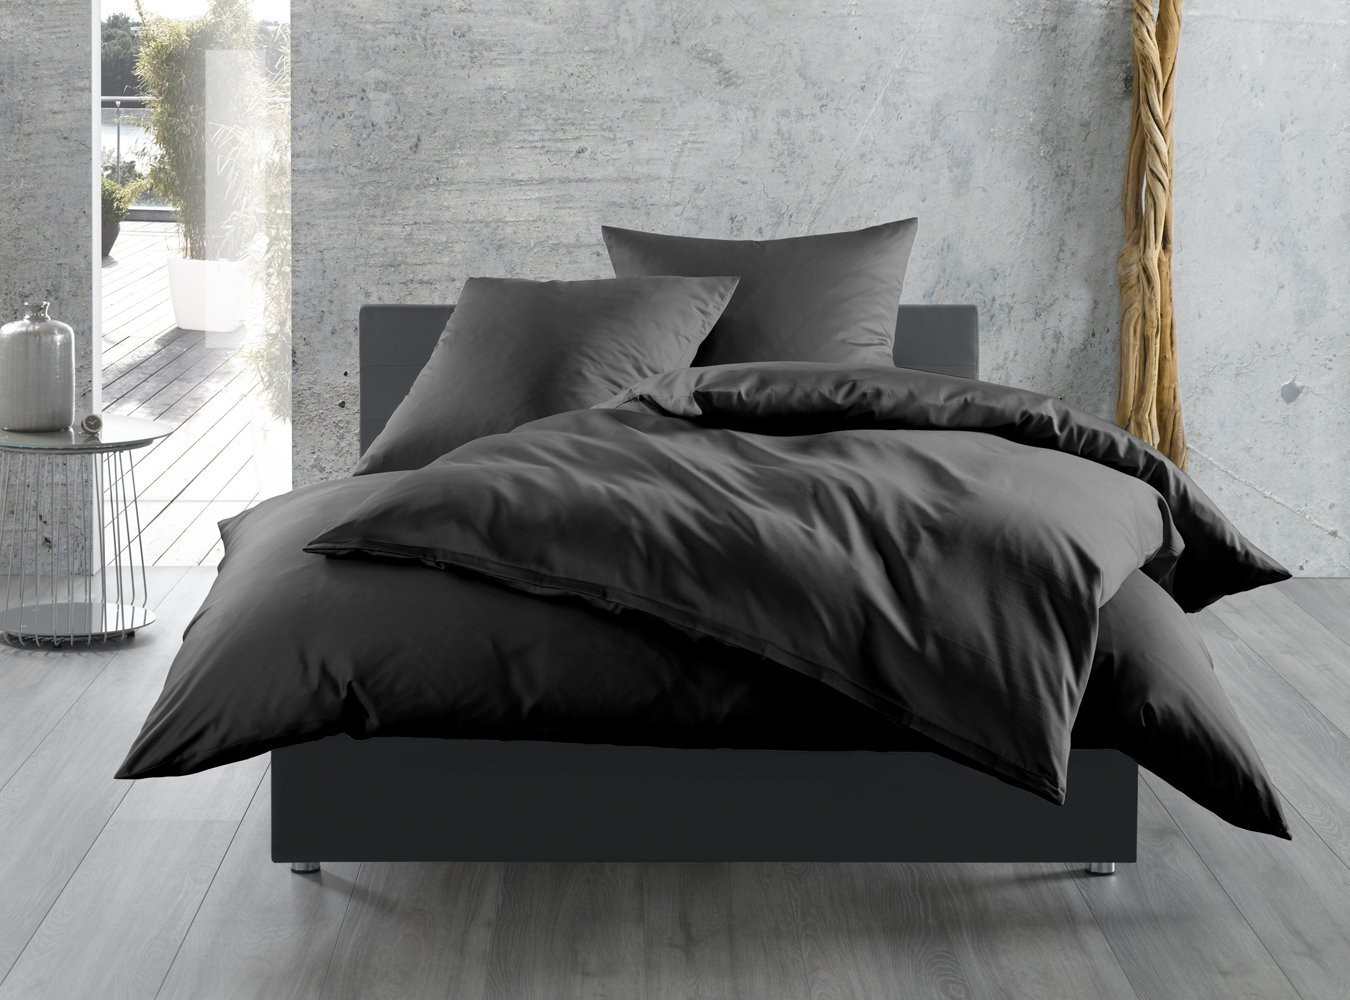 mako satin bettw sche uni einfarbig schwarz online kaufen bms. Black Bedroom Furniture Sets. Home Design Ideas